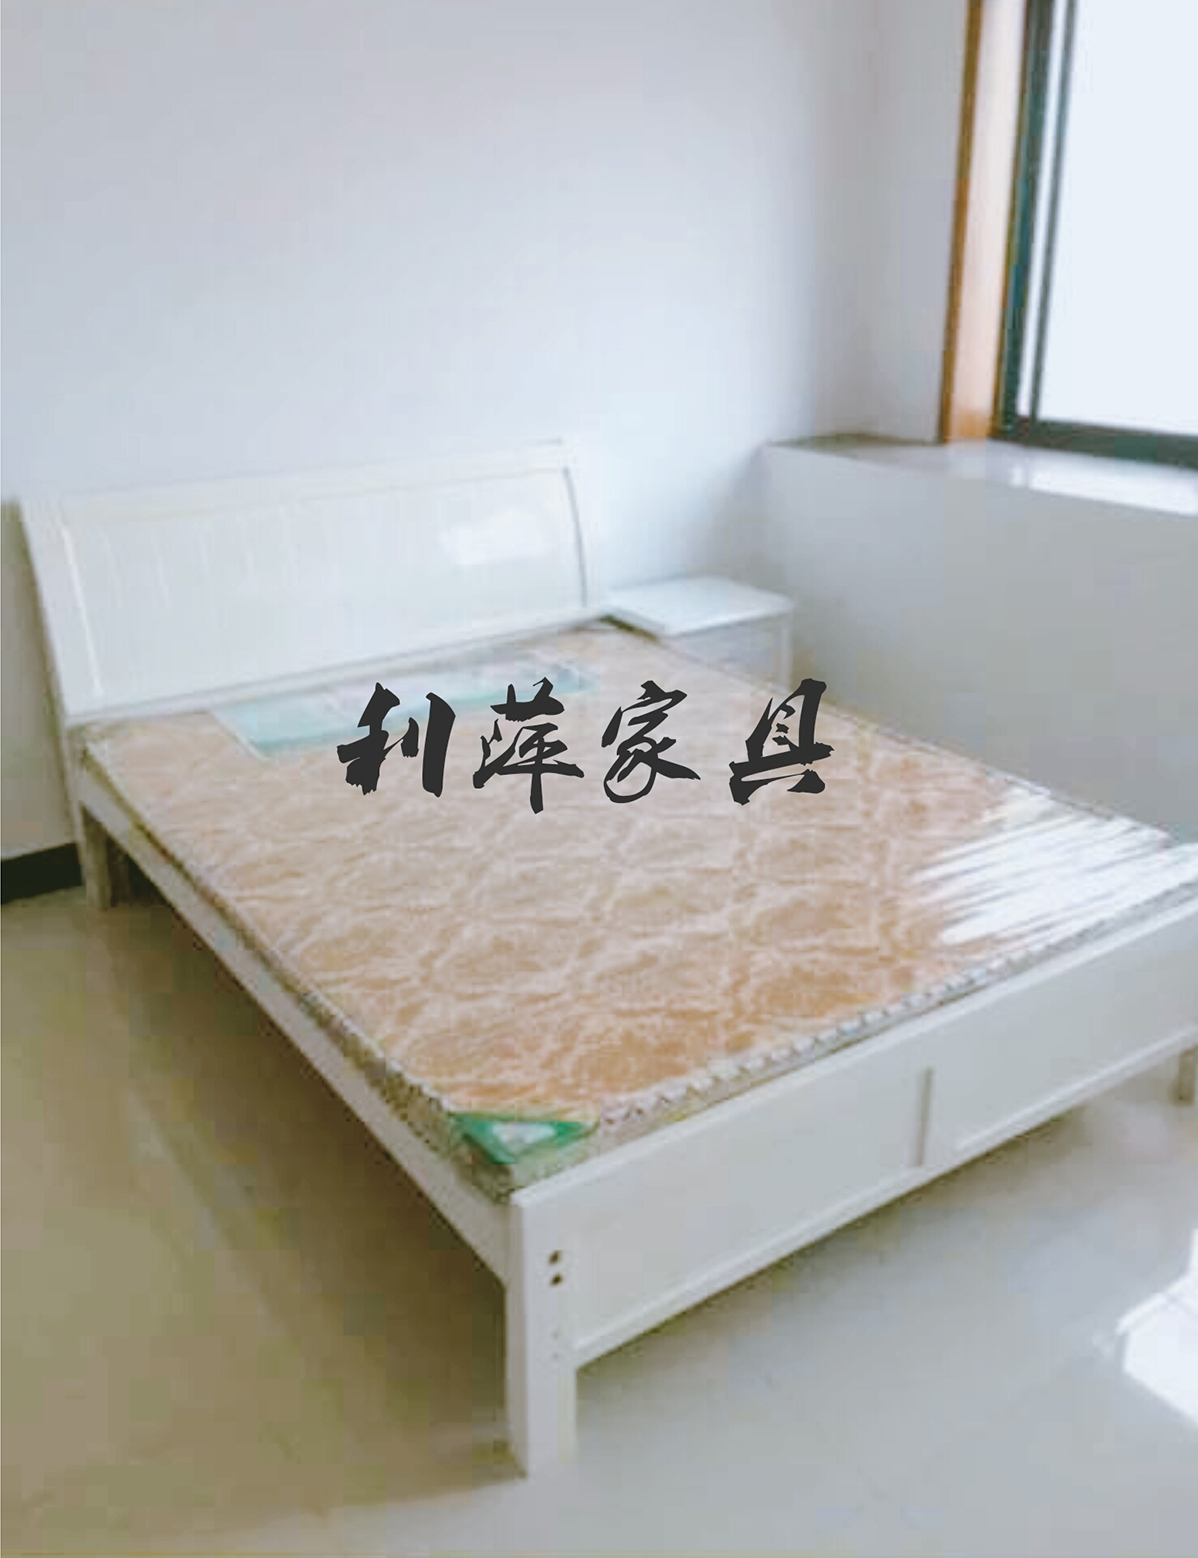 Solid wood bed double bed 1.5m meter single bed 1.2m simple modern adult solid wood bed paint bed white bed